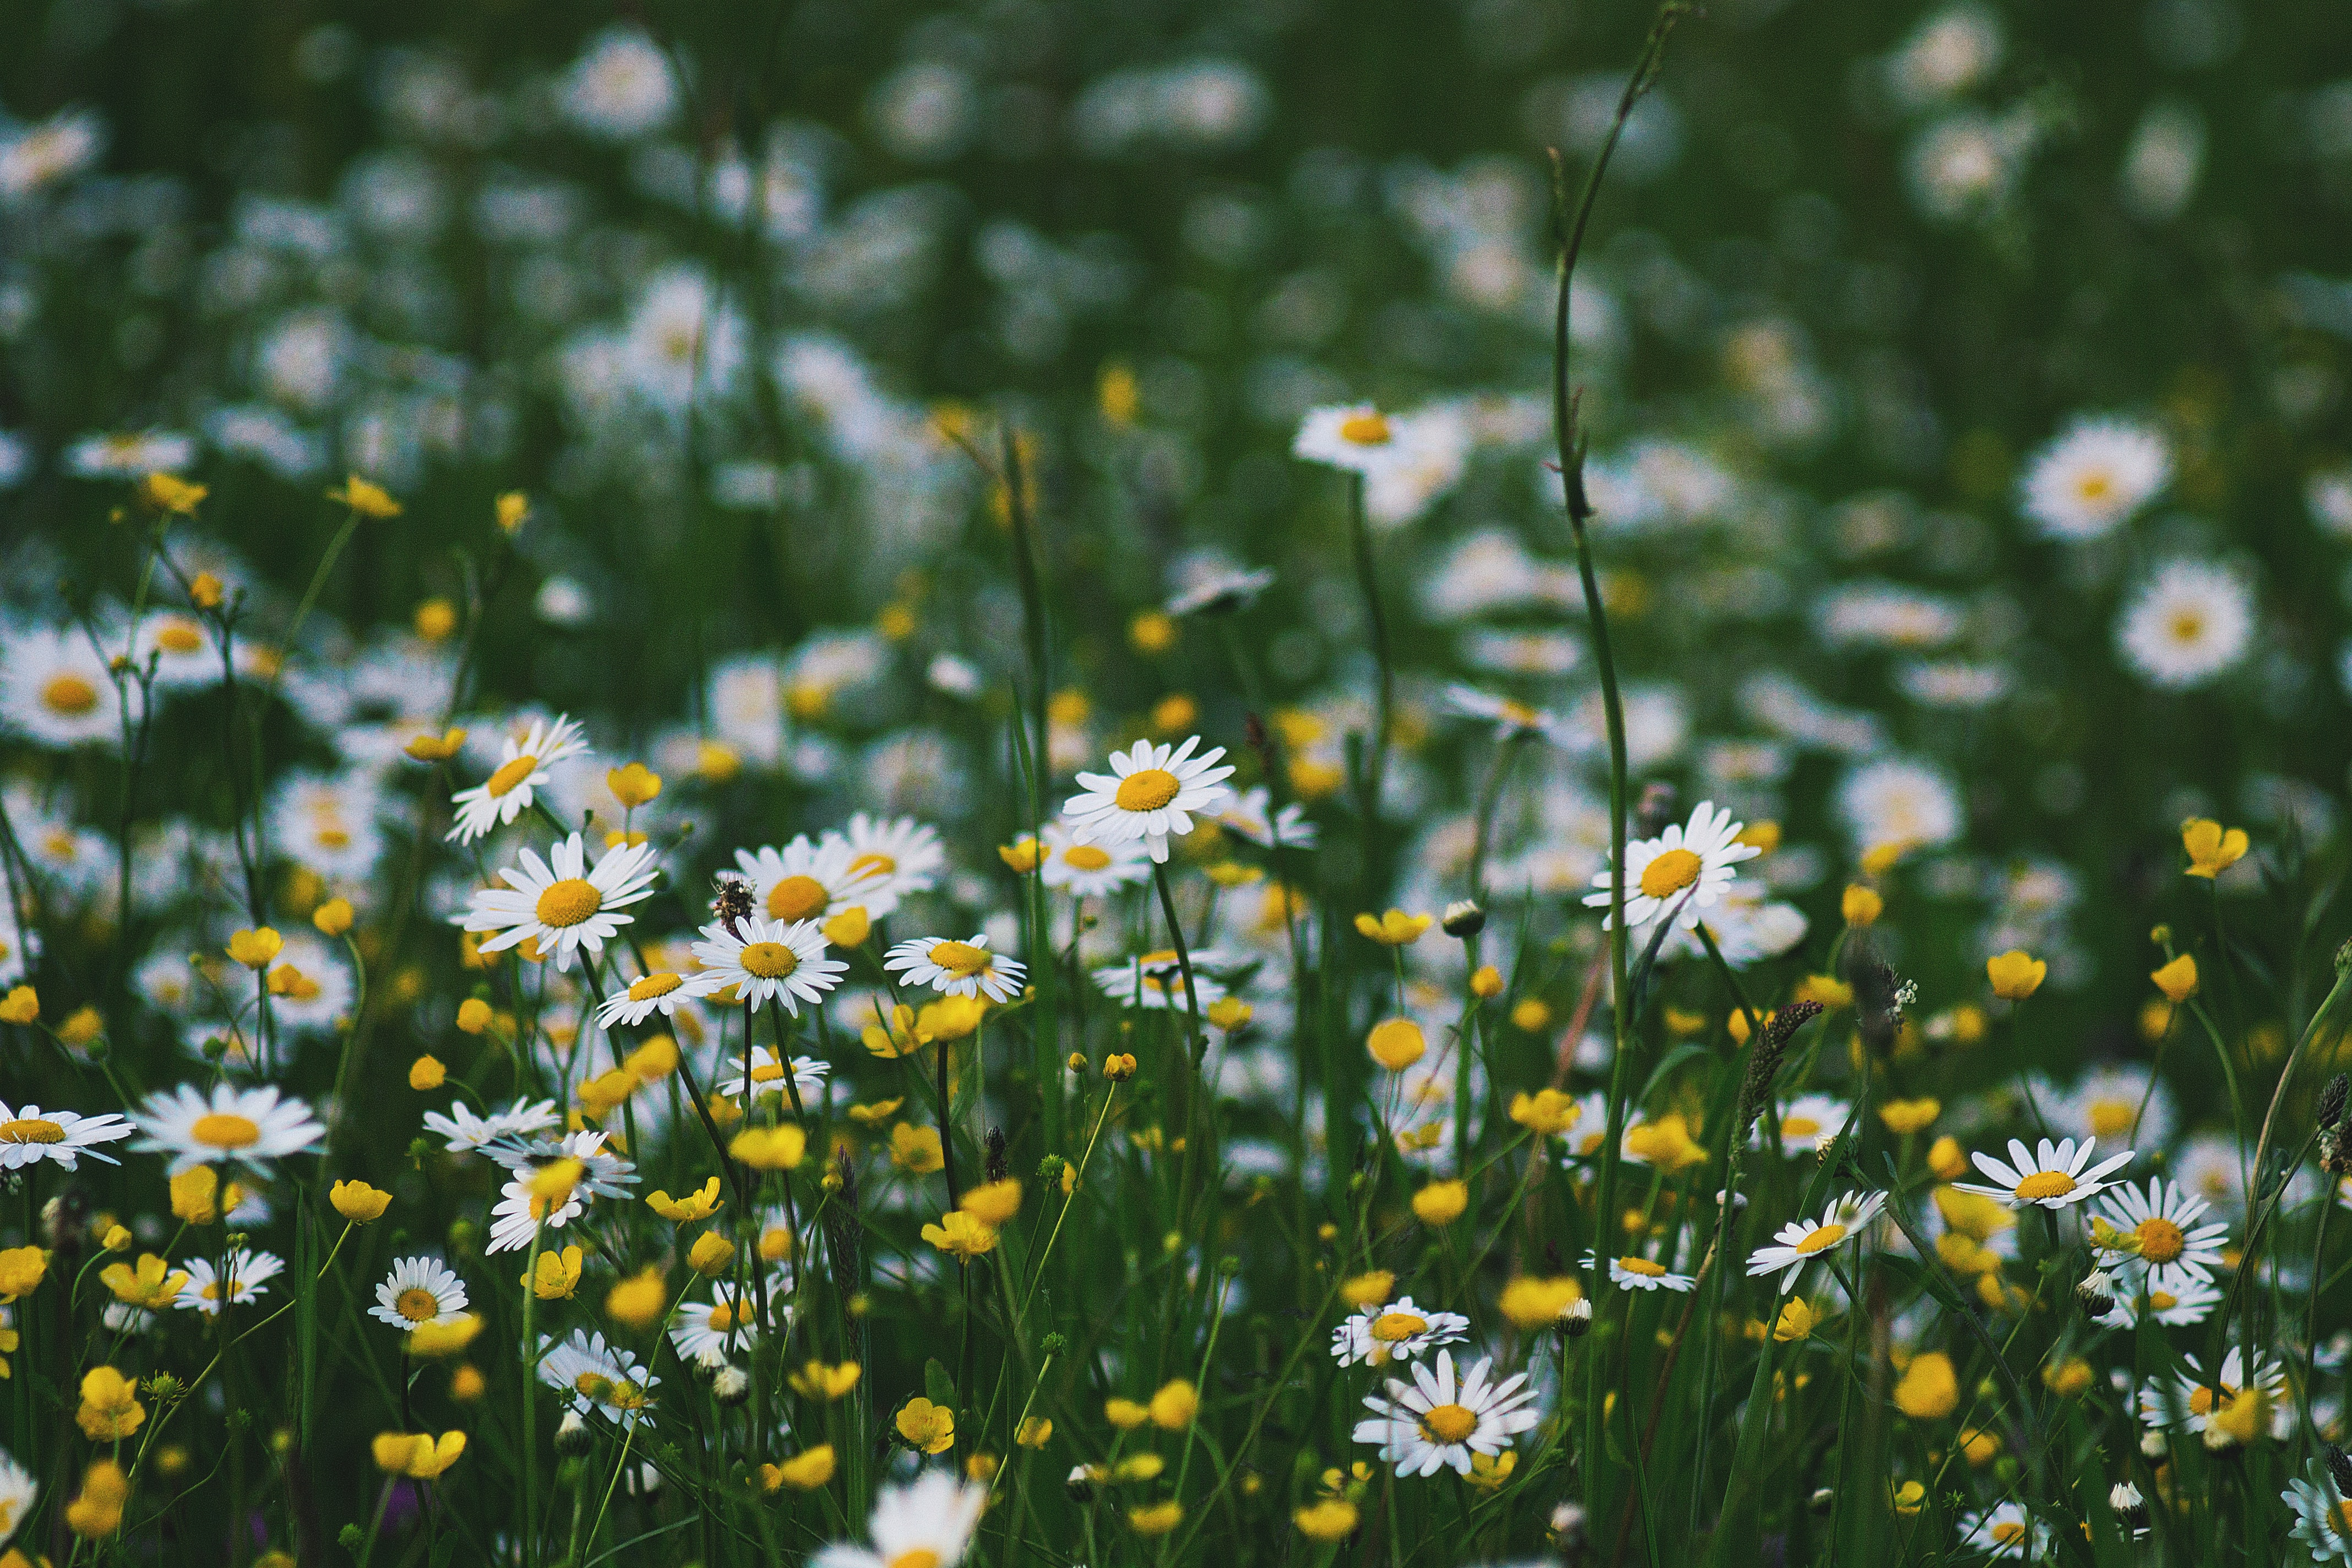 A green patch with chamomile and buttercup flowers